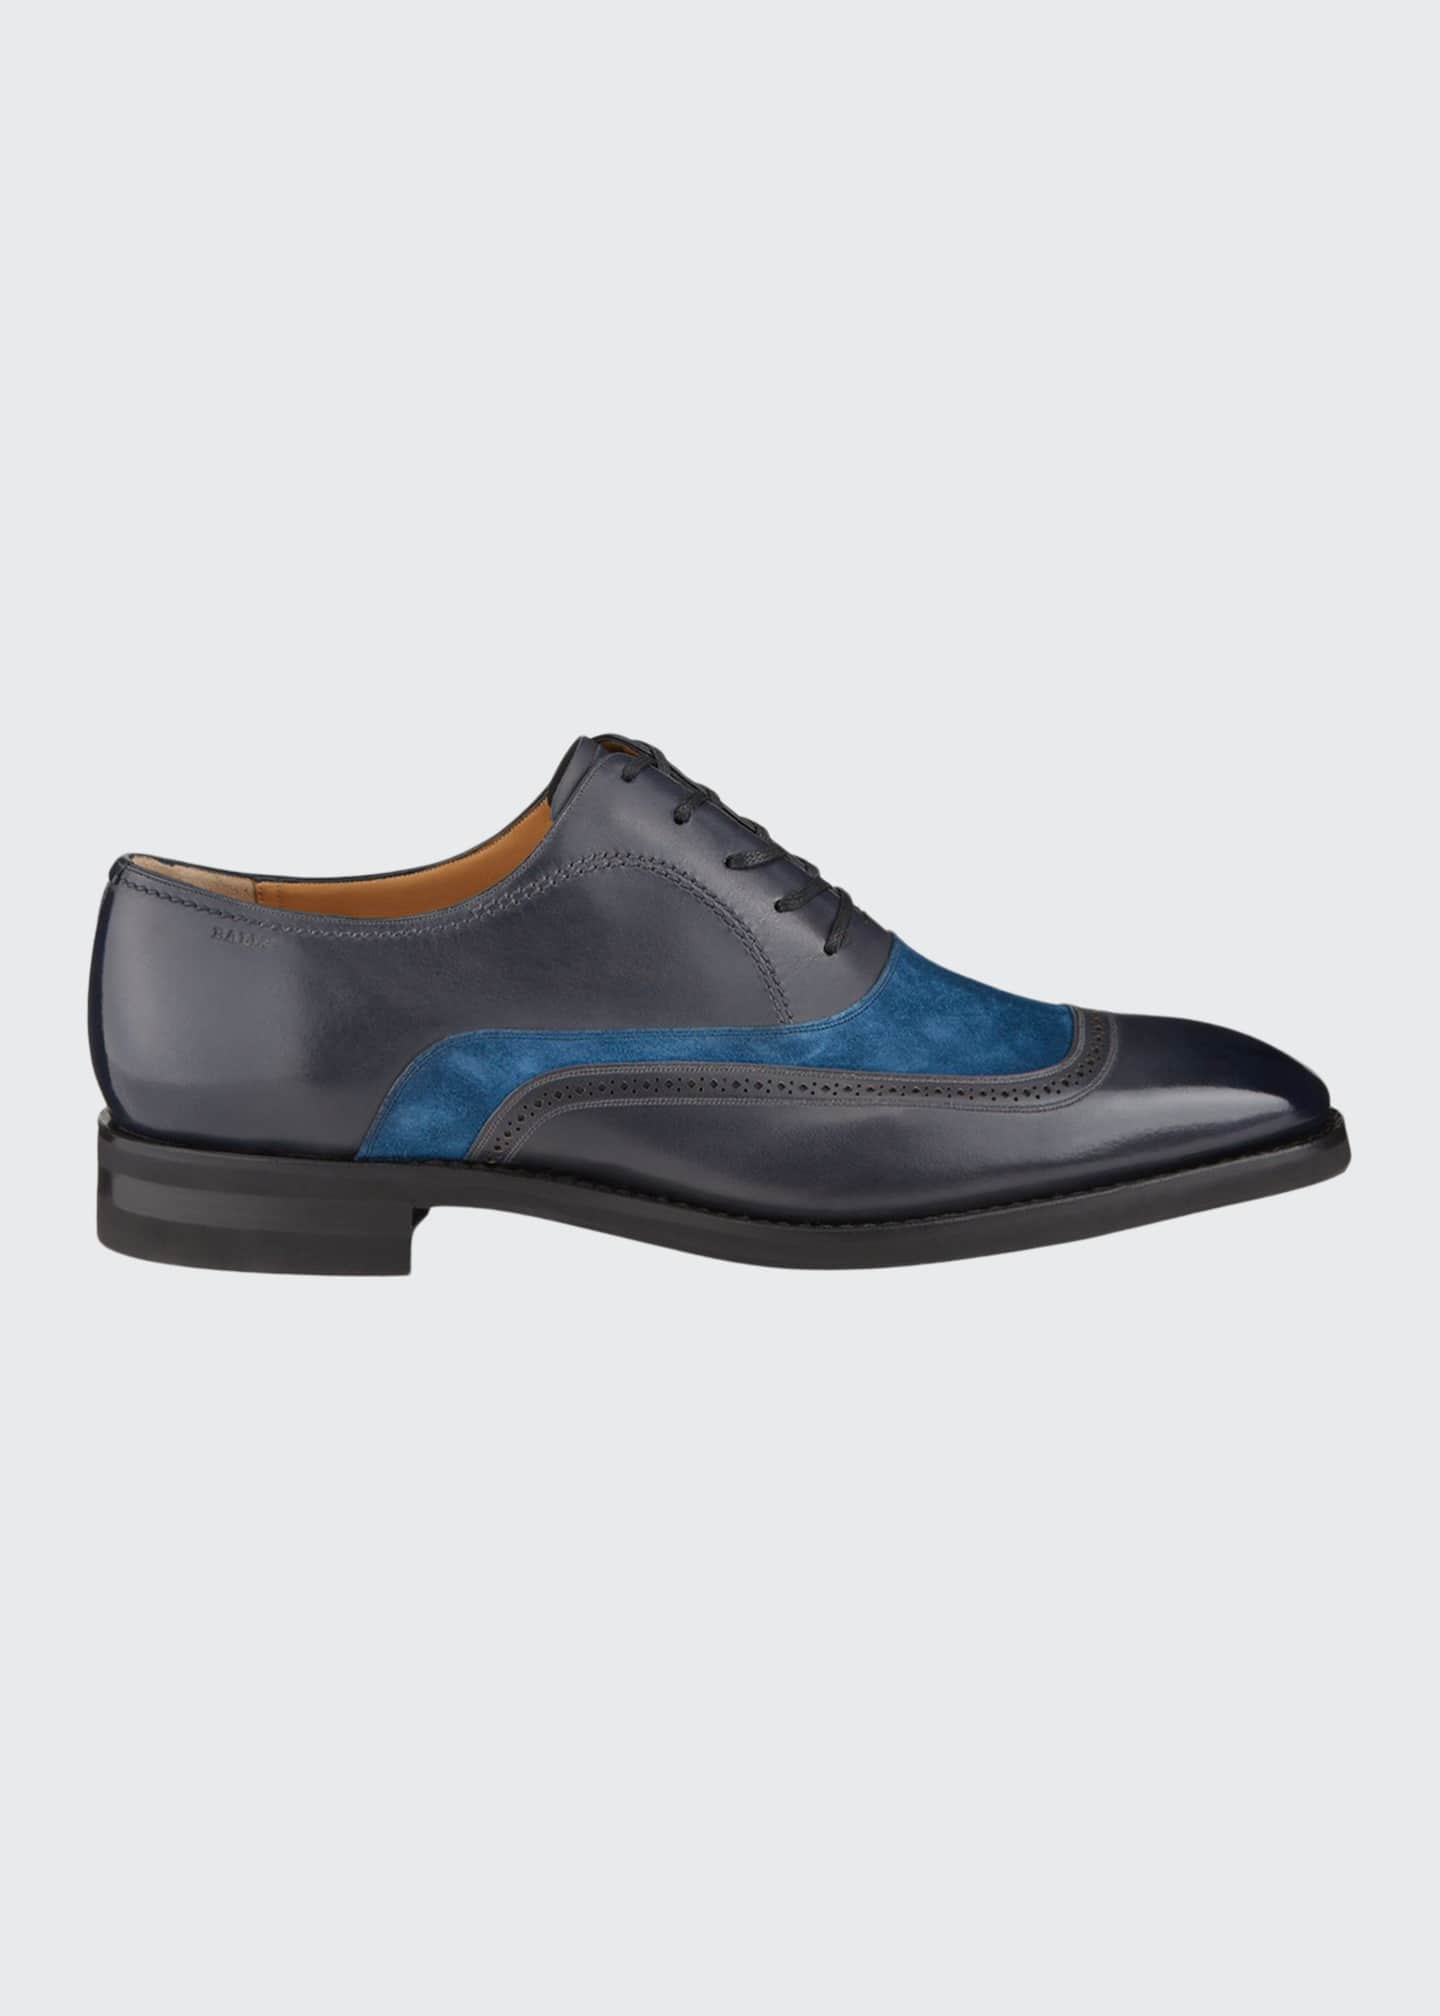 Image 1 of 4: Men's Contrast-Suede Leather Dress Shoes